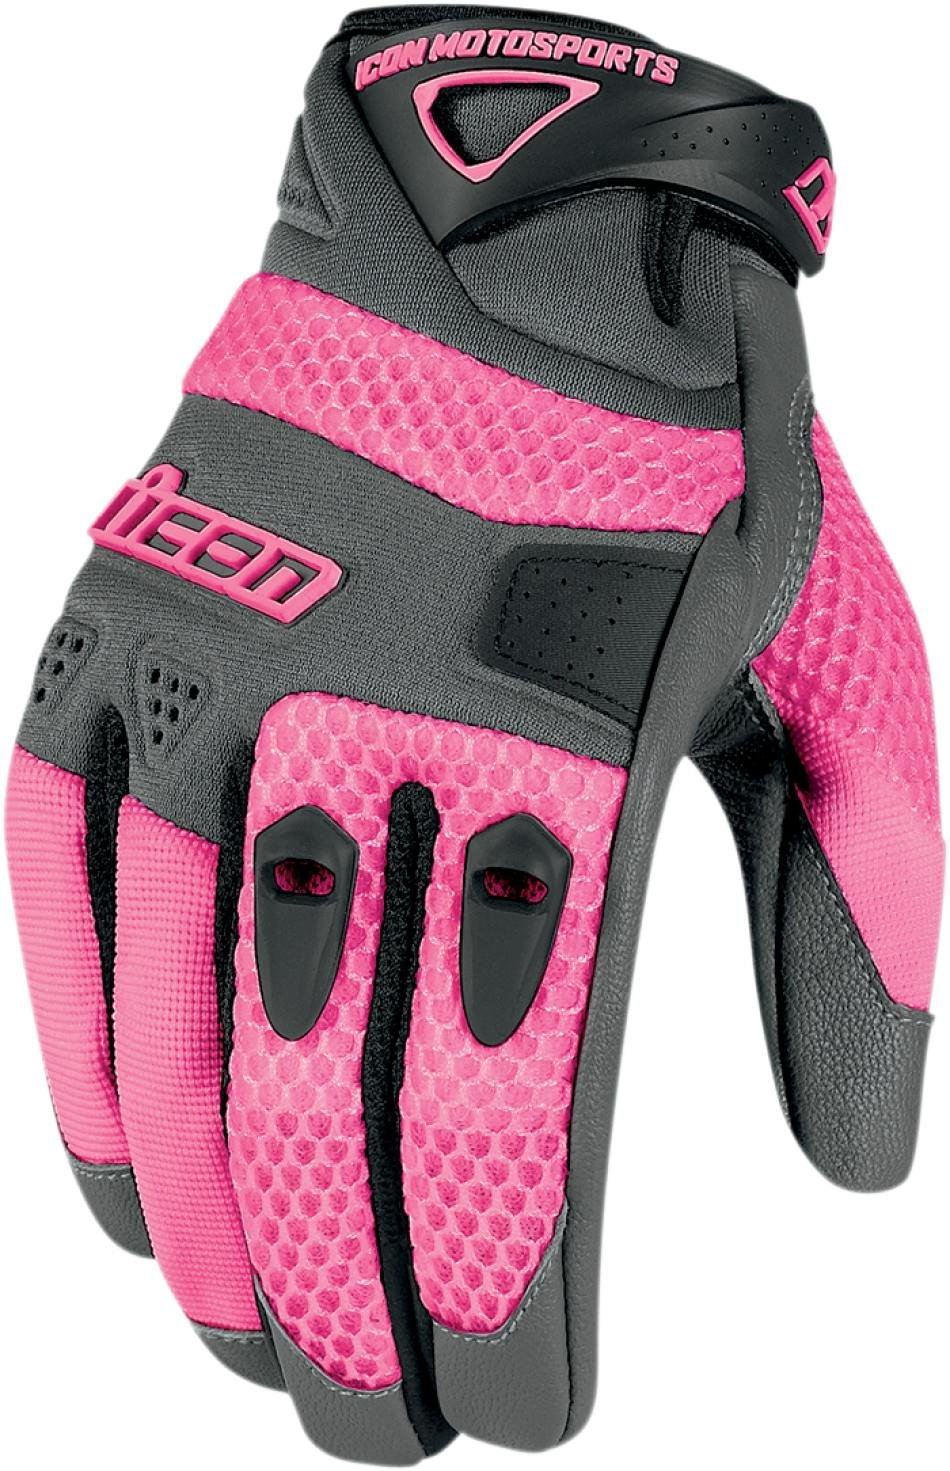 2013 Icon Anthem Women's Motorcycle Gloves - Pink - Small